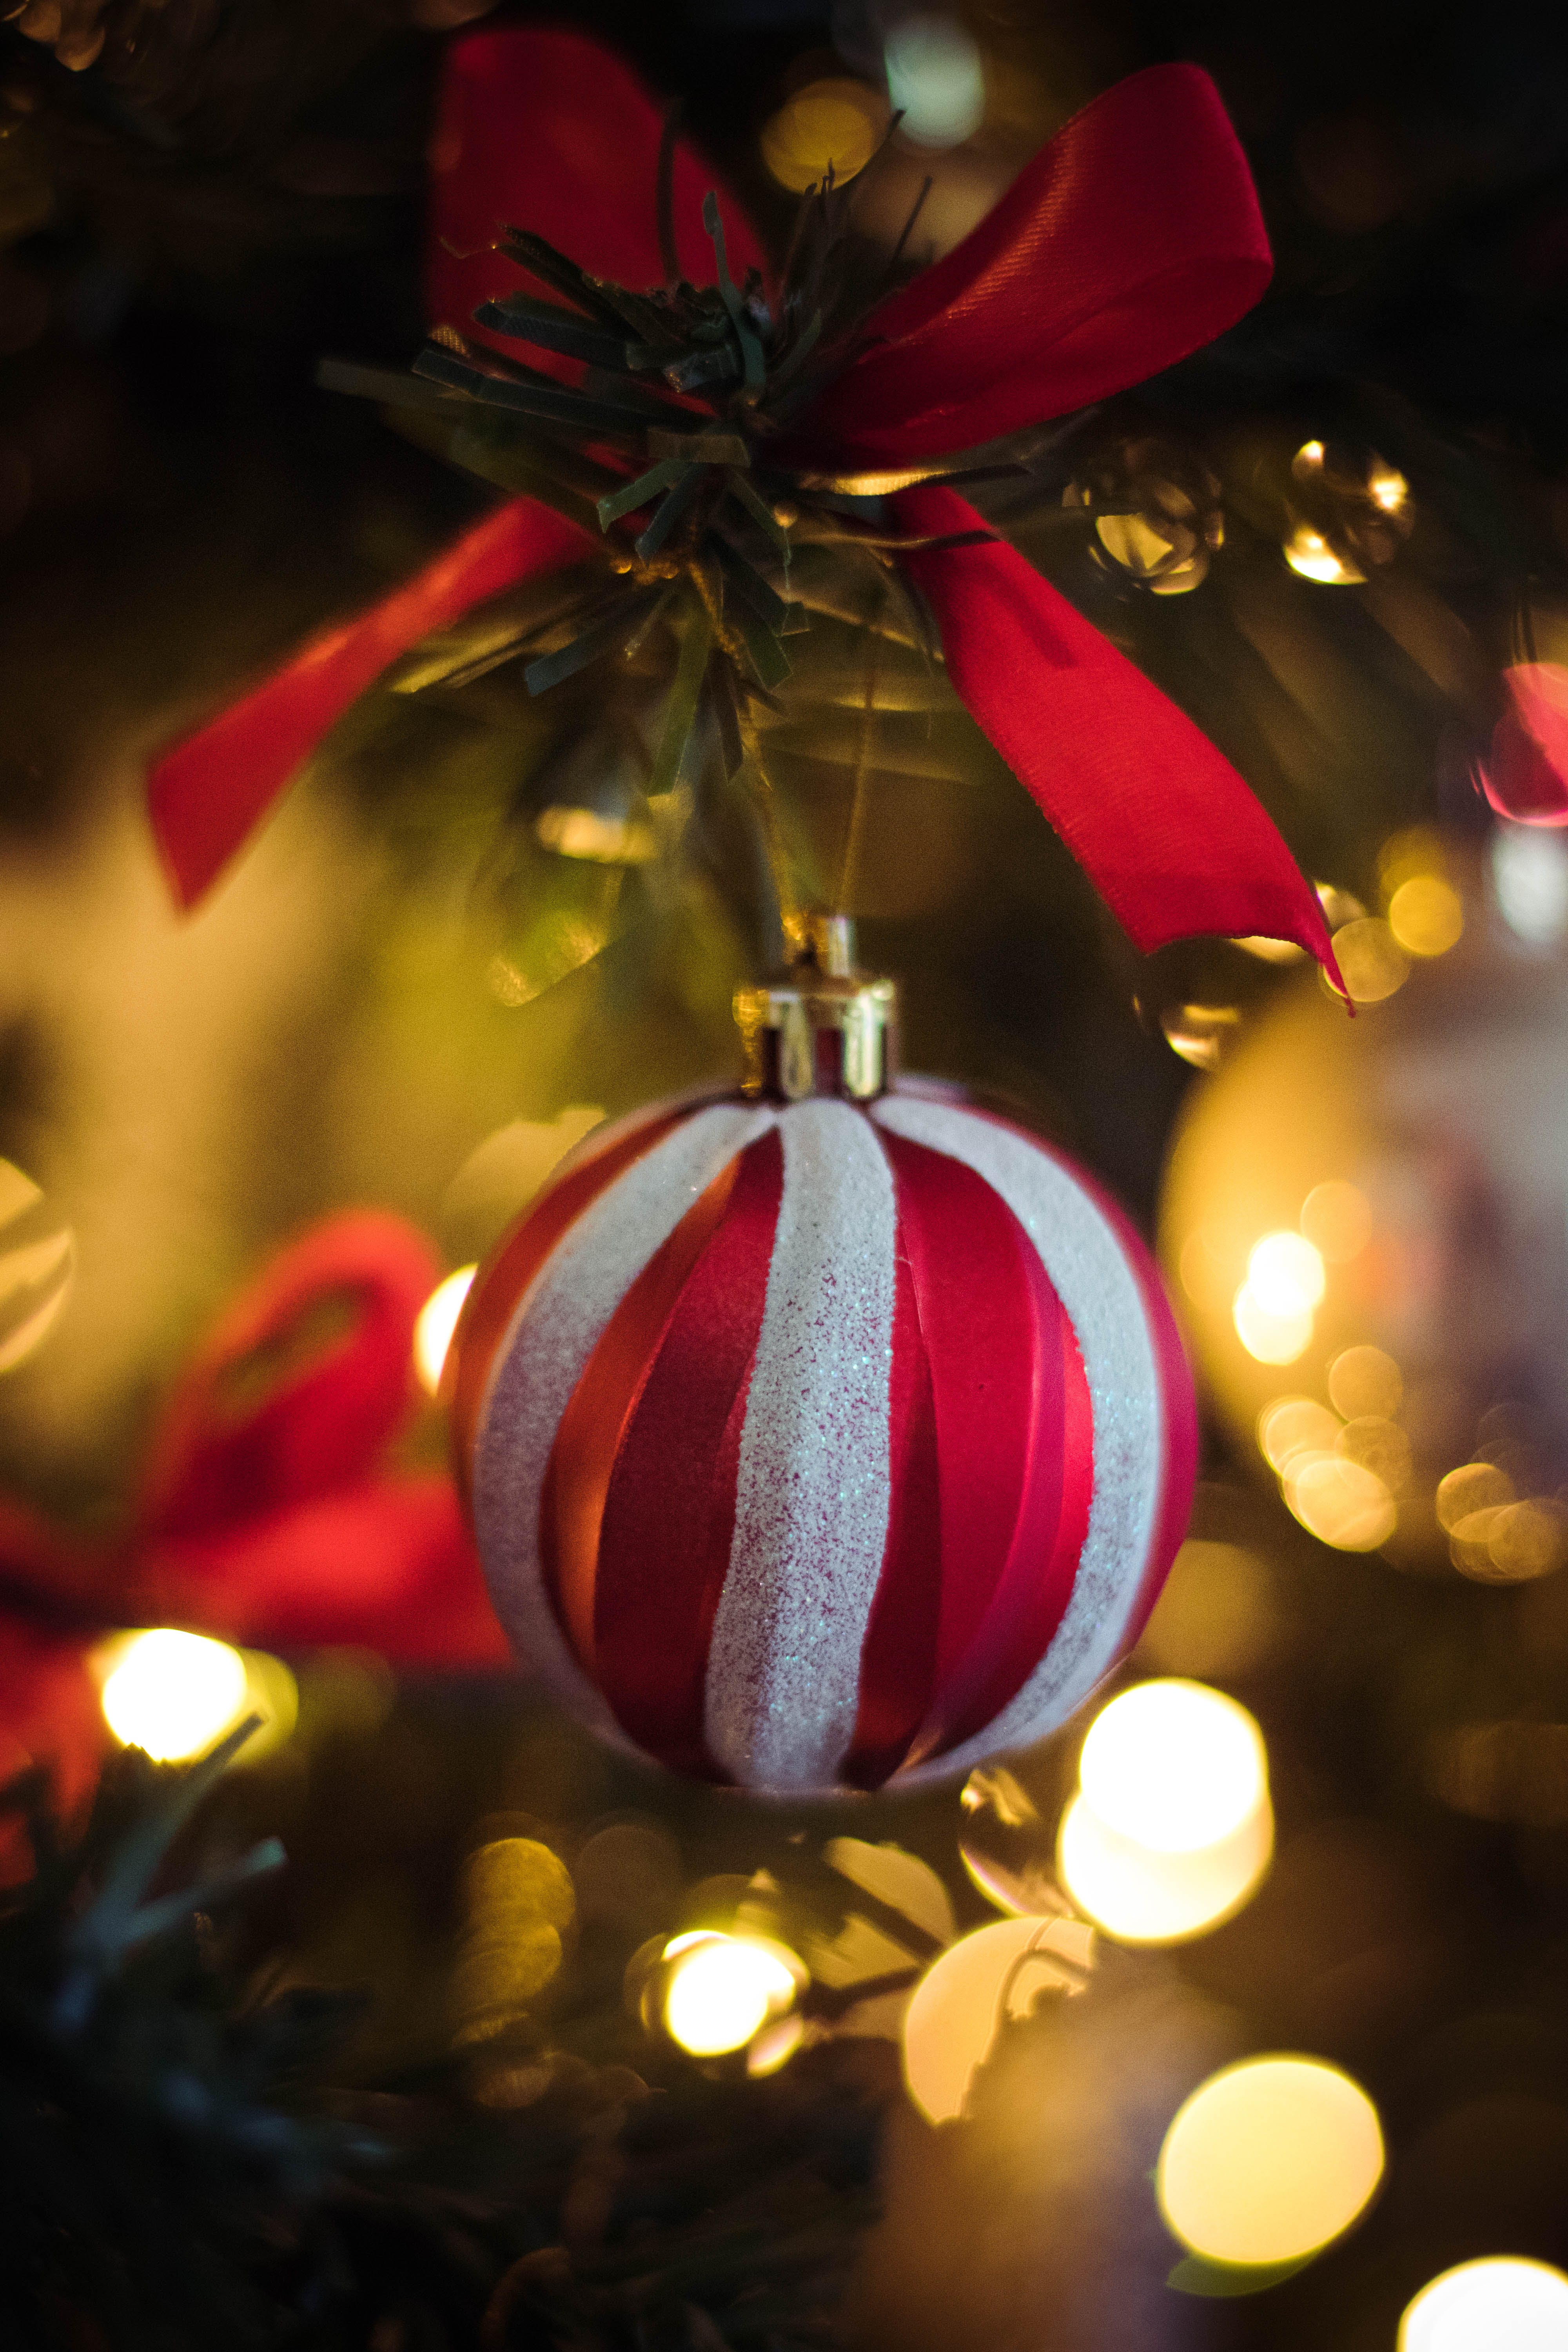 Red and White Stripe Christmas Bauble Hanging on Christmas Tree